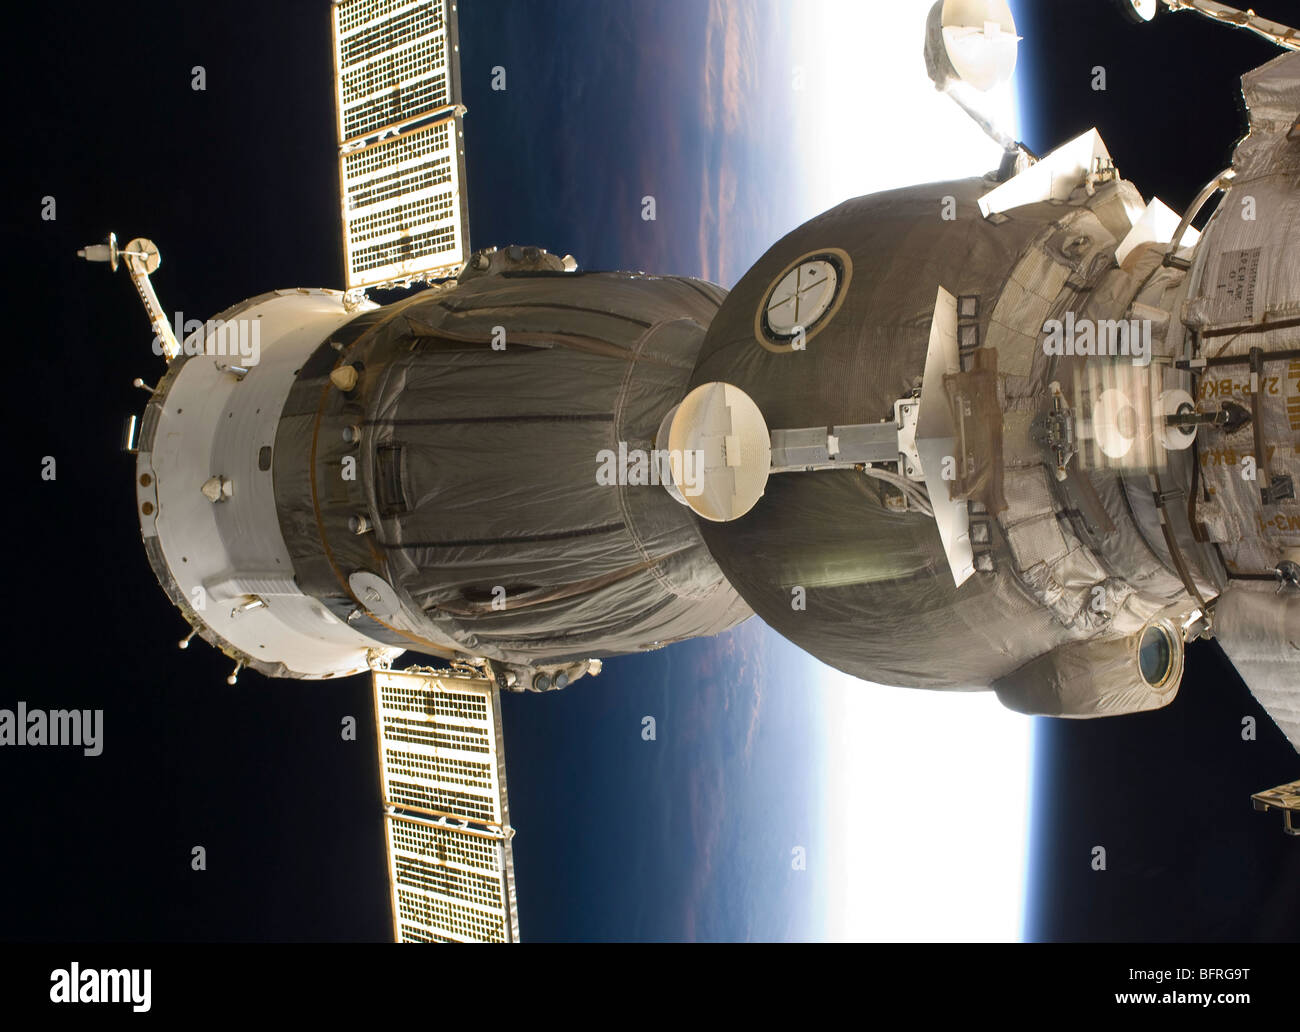 A Soyuz spacecraft backdropped by Earth. - Stock Image